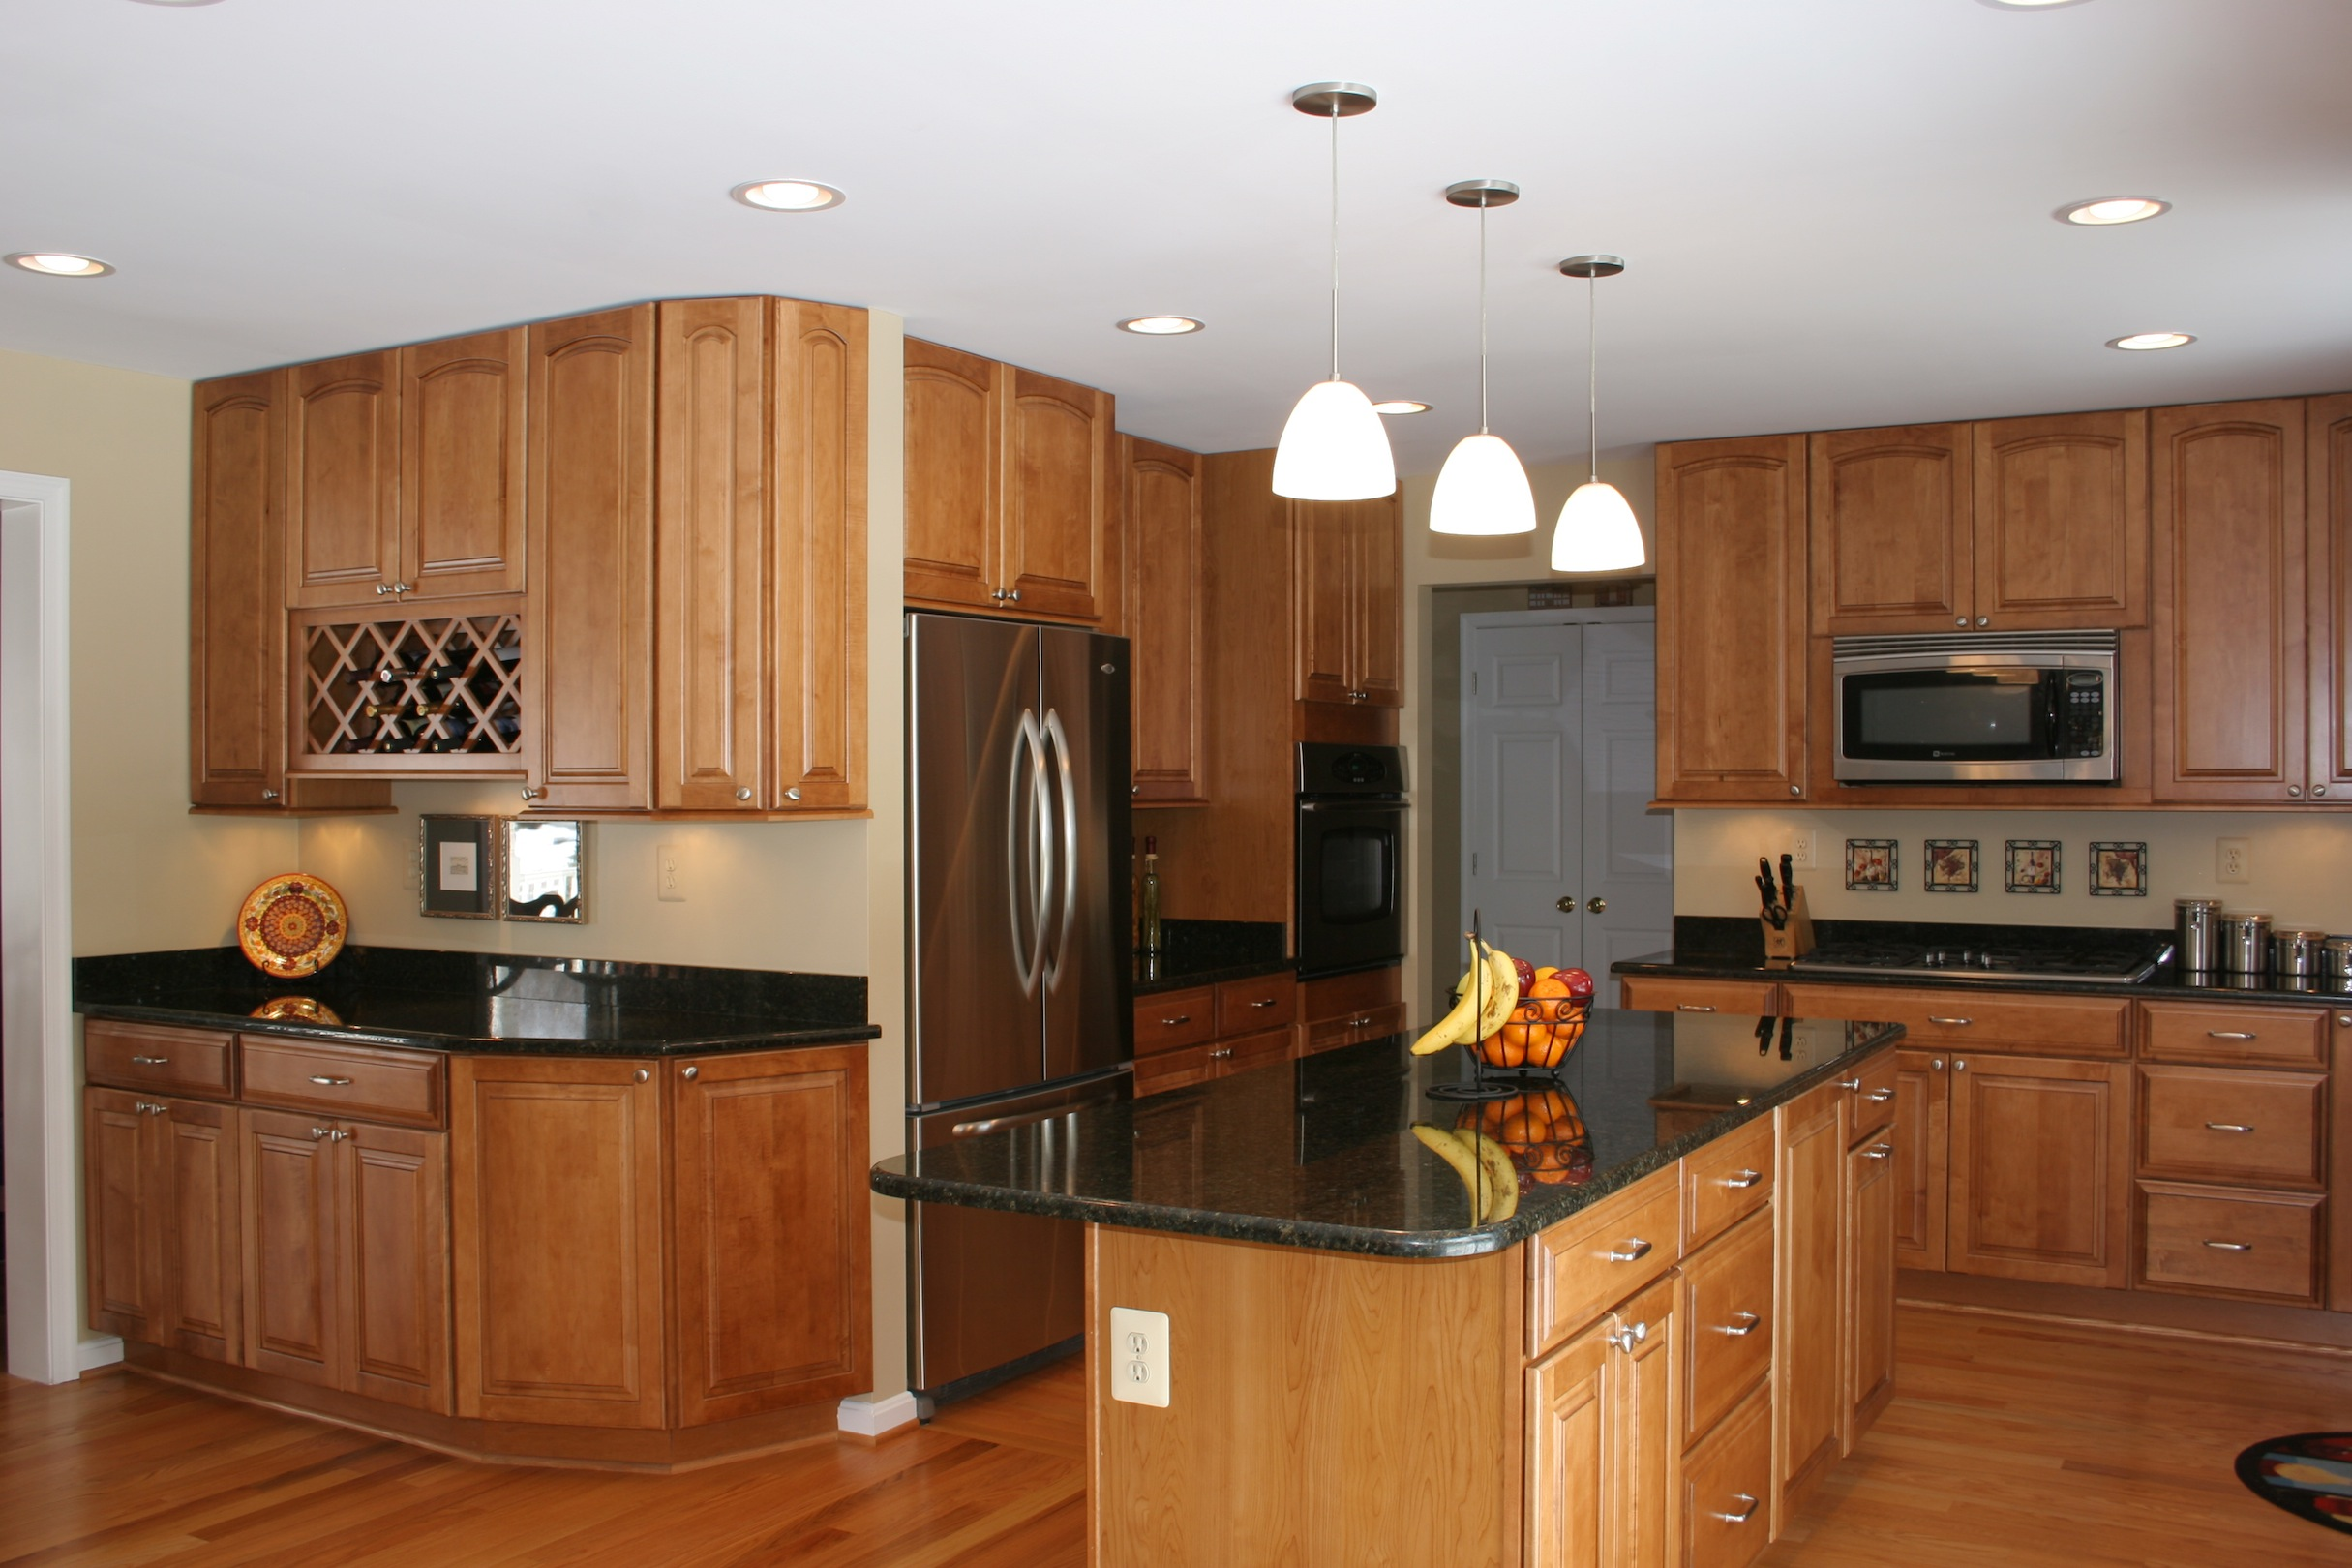 estimate kitchen remodel kitchen remodel estimator Average Cost To Add A Half Bathroom Contemporary Master Bathrooms